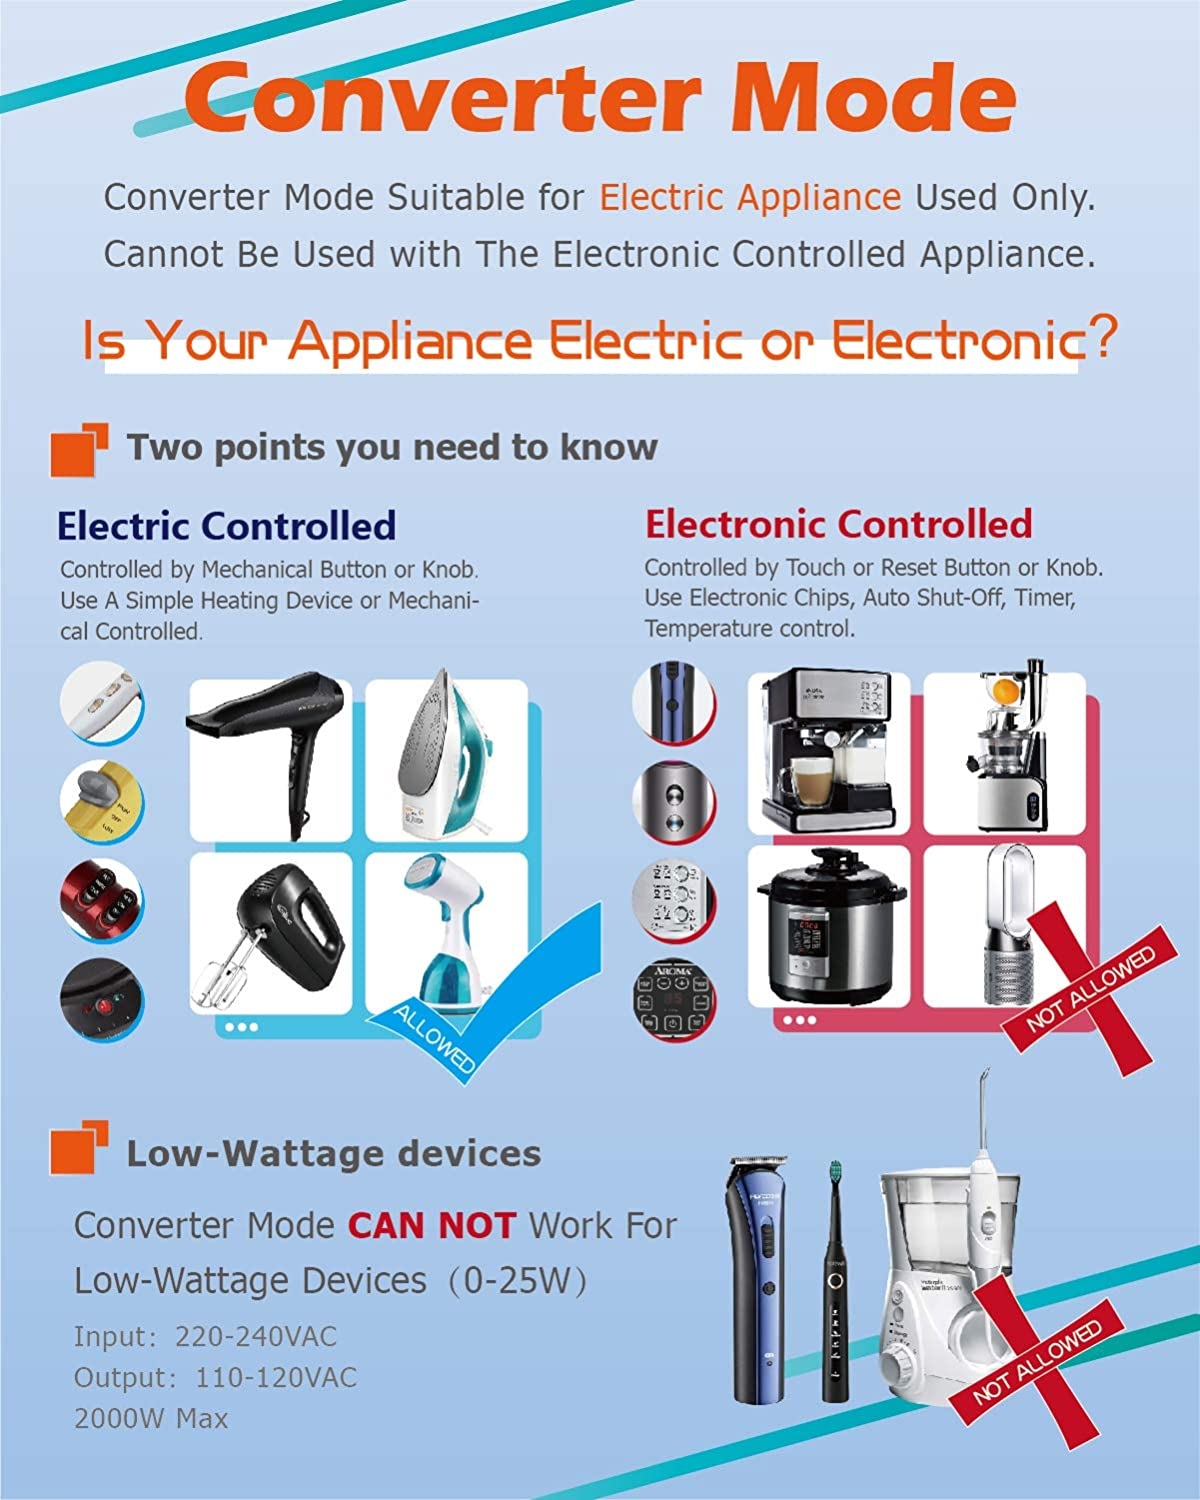 UK Asia Over 150 Countries 2000Watt Electric Converter Adapter Combo Step Down Voltage 220V to 110V for Hair Dryer Steam Iron Cell Phone Laptop MacBook Dual USB Power Plug Adapters US to Europe AU